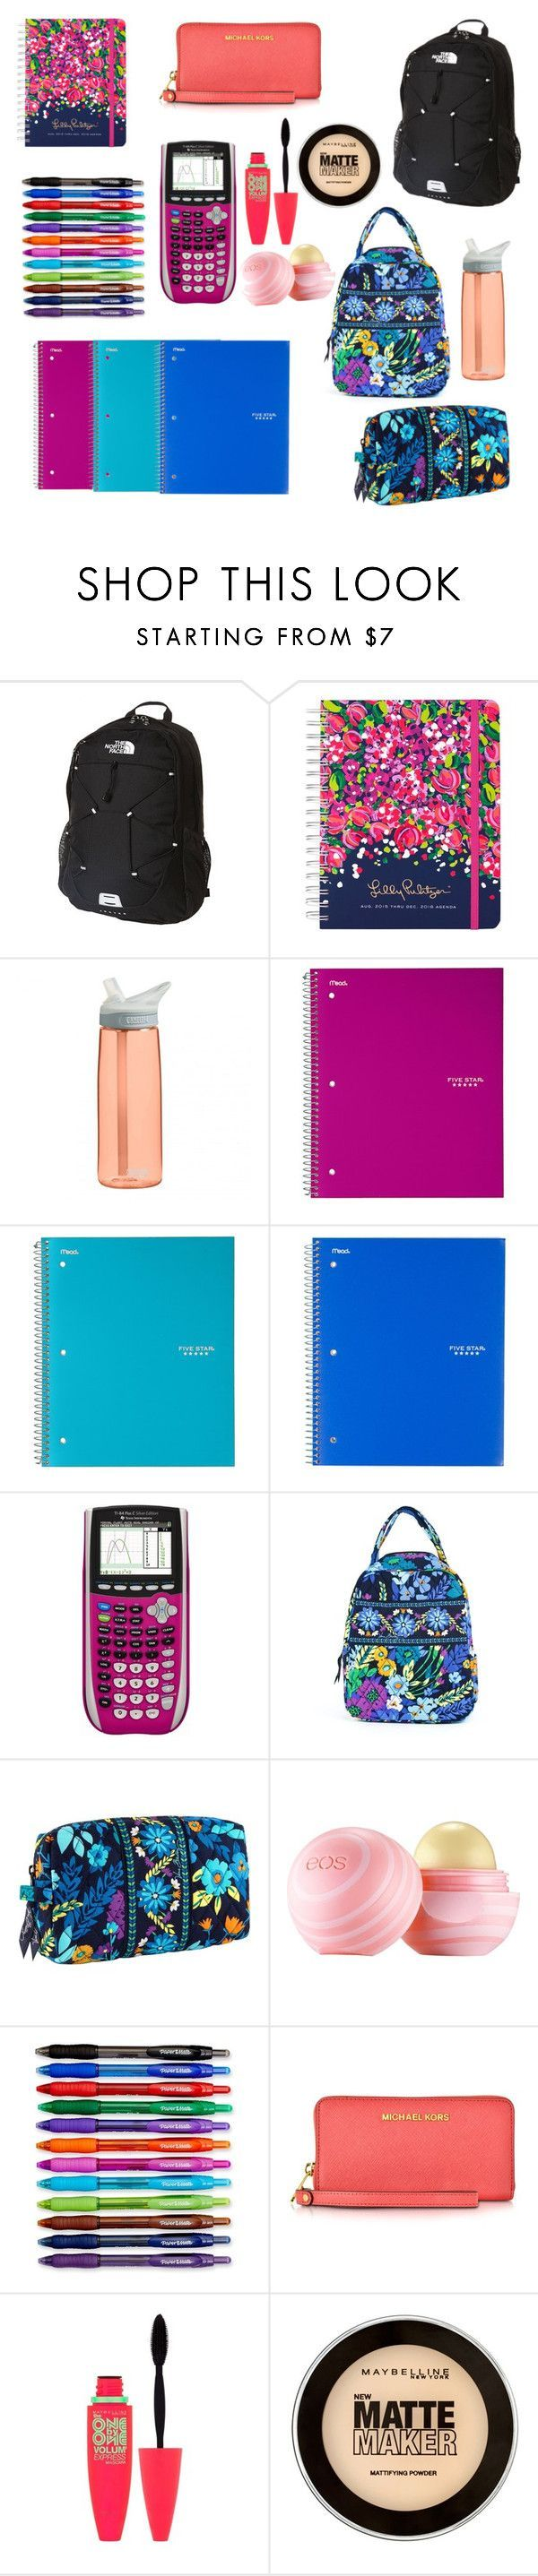 """Preppy School Supplies"" by oliviafox11 ❤ liked on Polyvore featuring beauty, The North Face, Lilly Pulitzer, CamelBak, Vera Bradley, Eos, Paper Mate, Michael Kors and Maybelline"